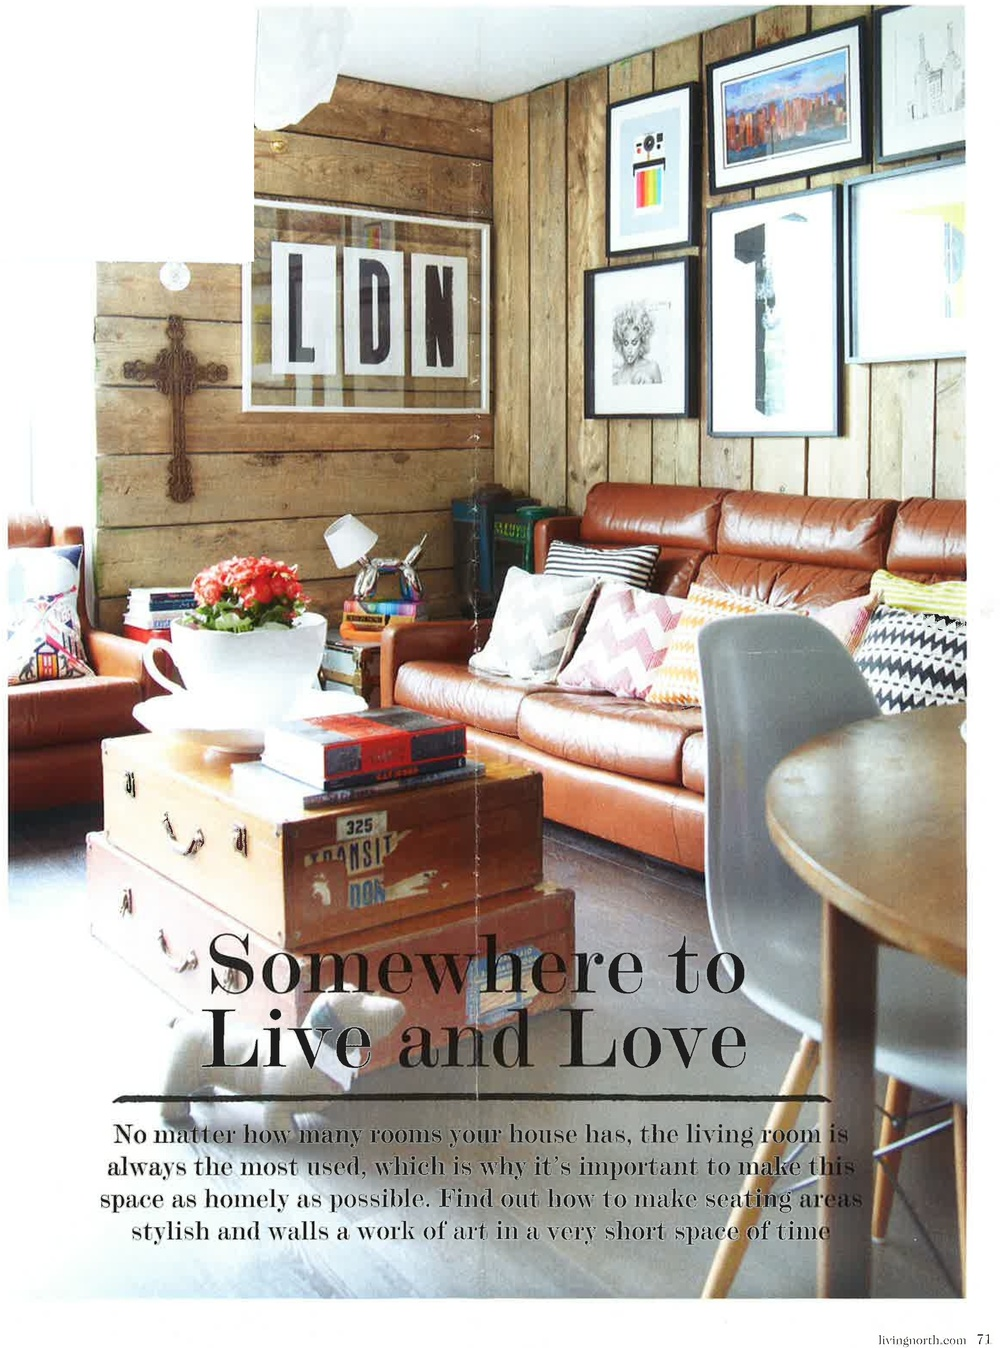 Living North magazine, April 2014